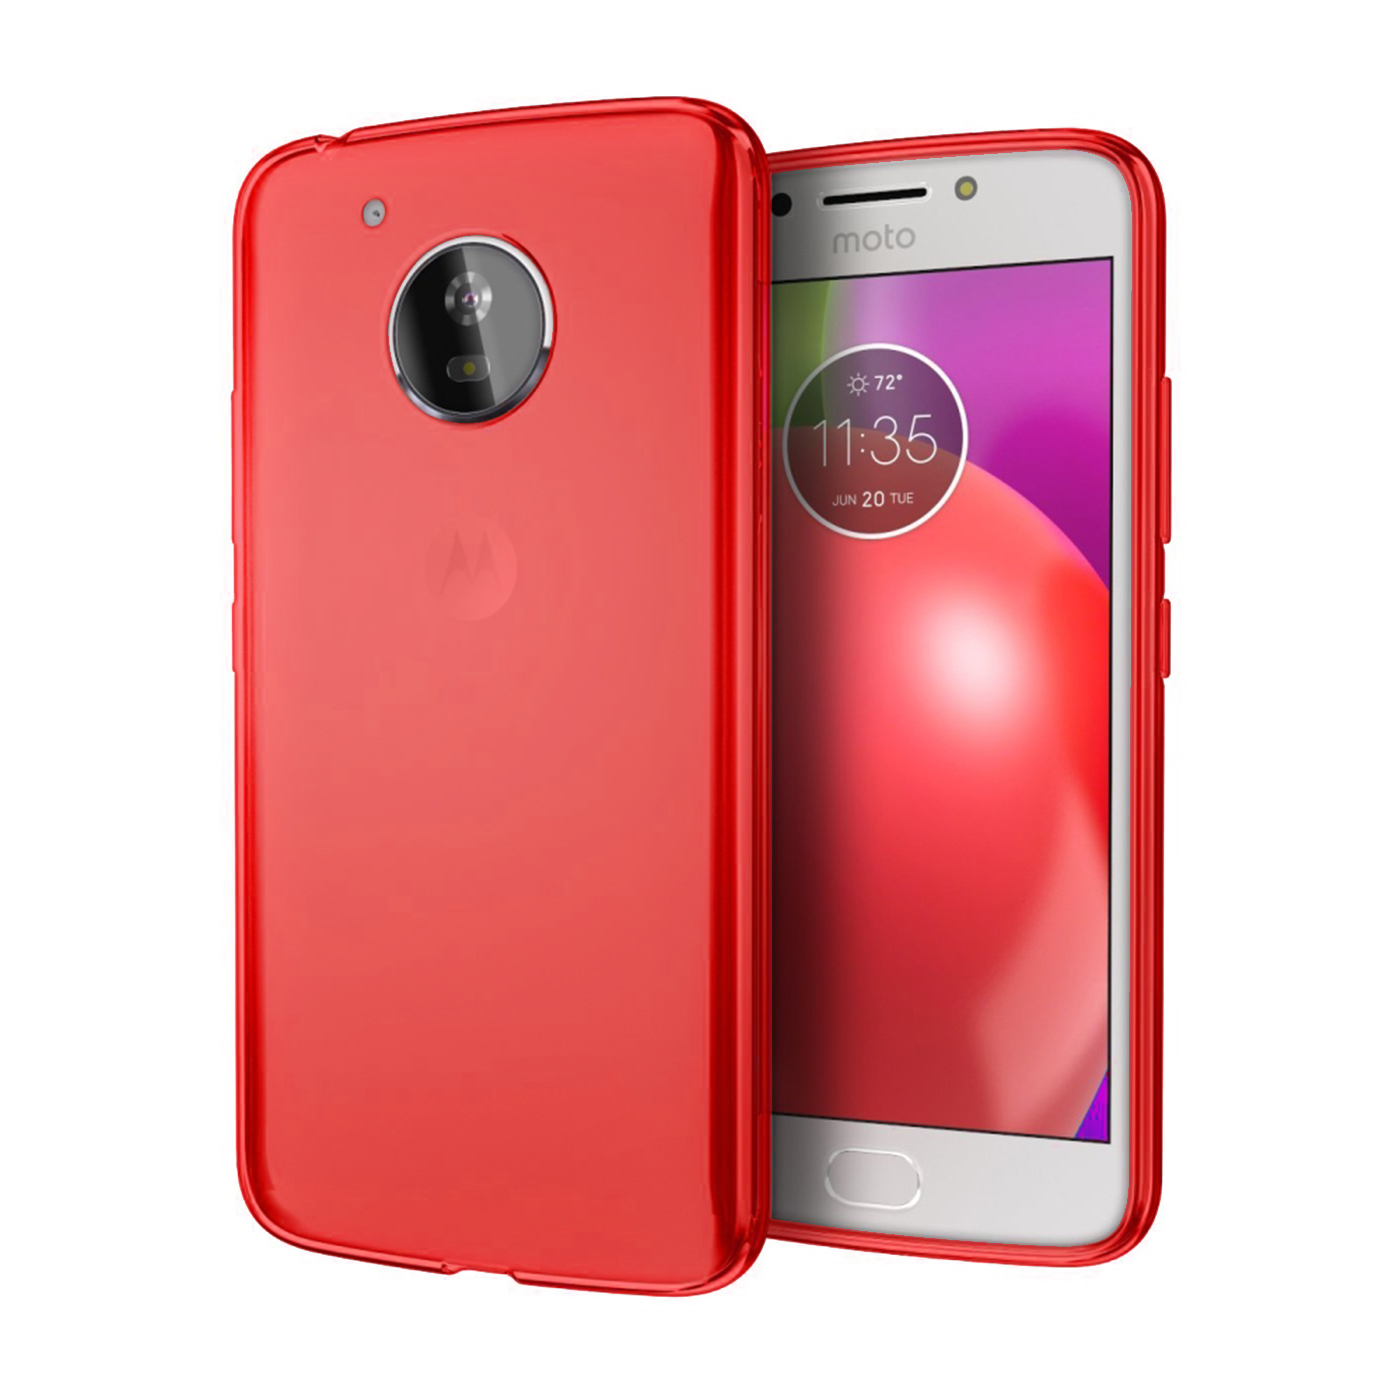 [REDshield] Motorola Moto E4 PLUS Case, [Red] Slim & Flexible Anti-shock Crystal Silicone Protective TPU Gel Skin Case Cover